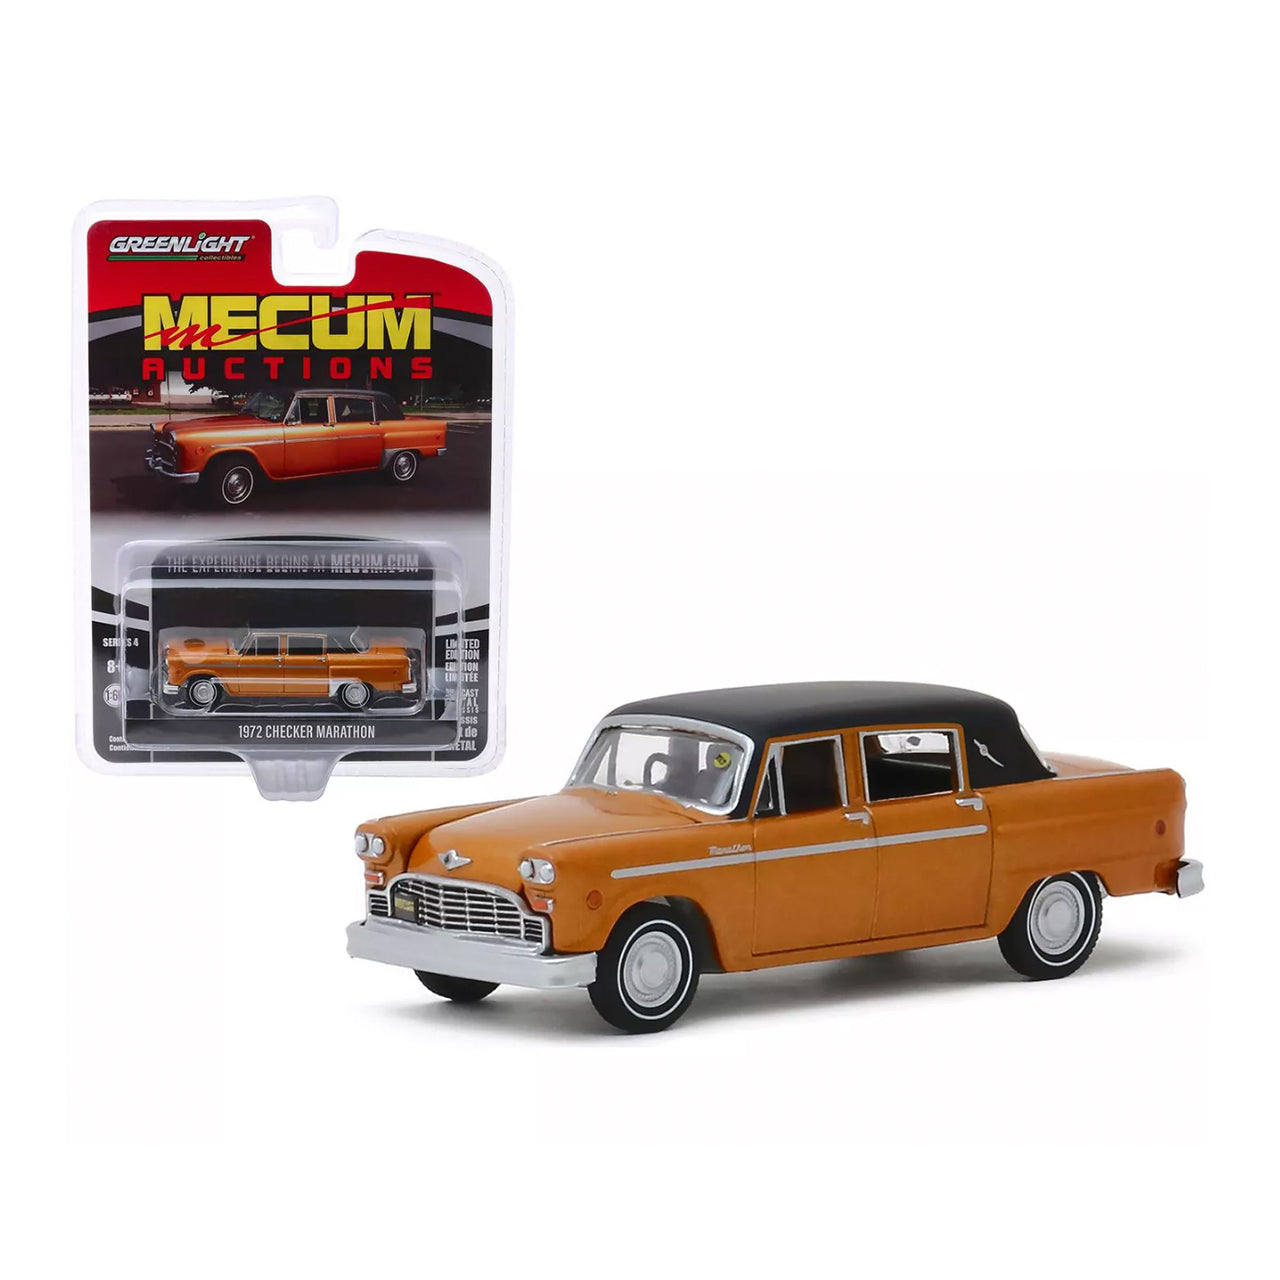 Checker Marathon Diecast Car